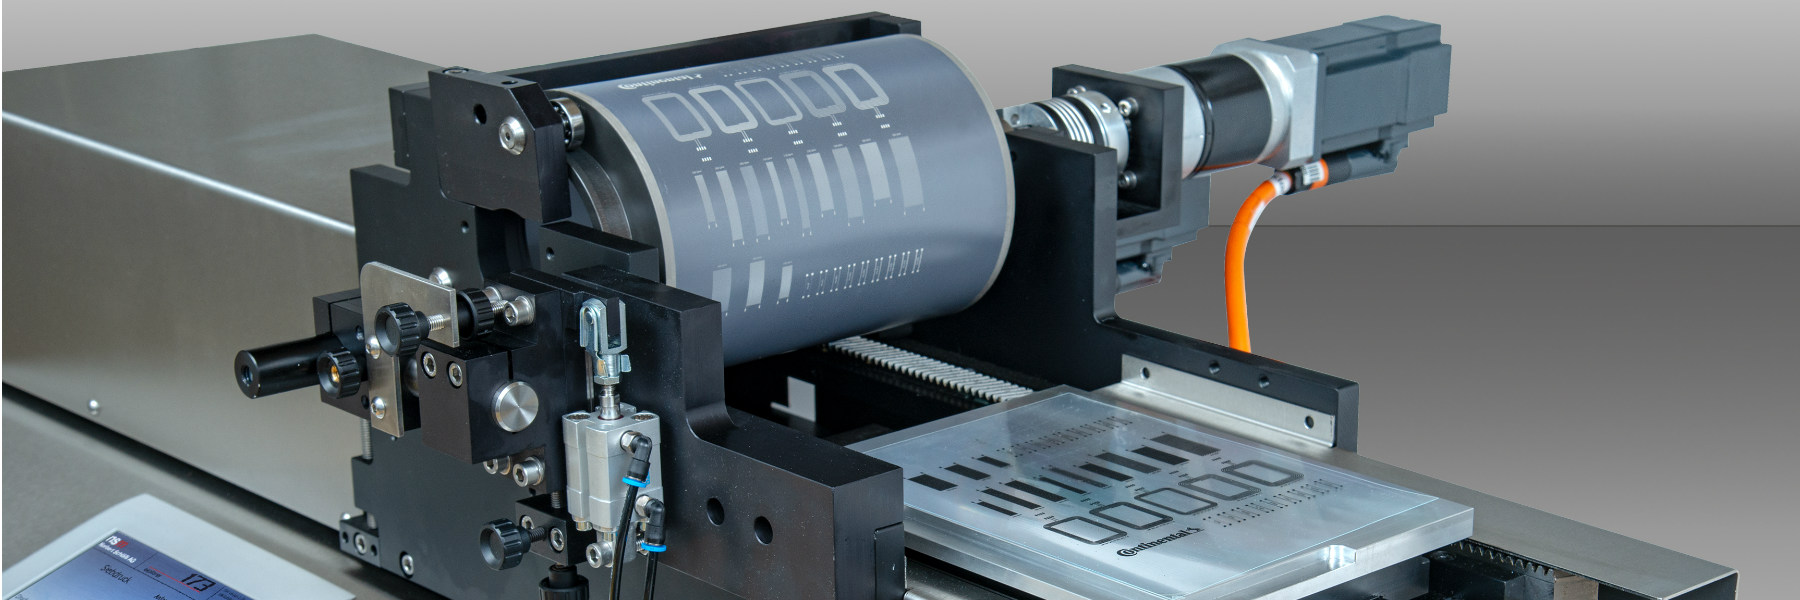 explorer 173 | sheet-fed printing and coating machine by nsm